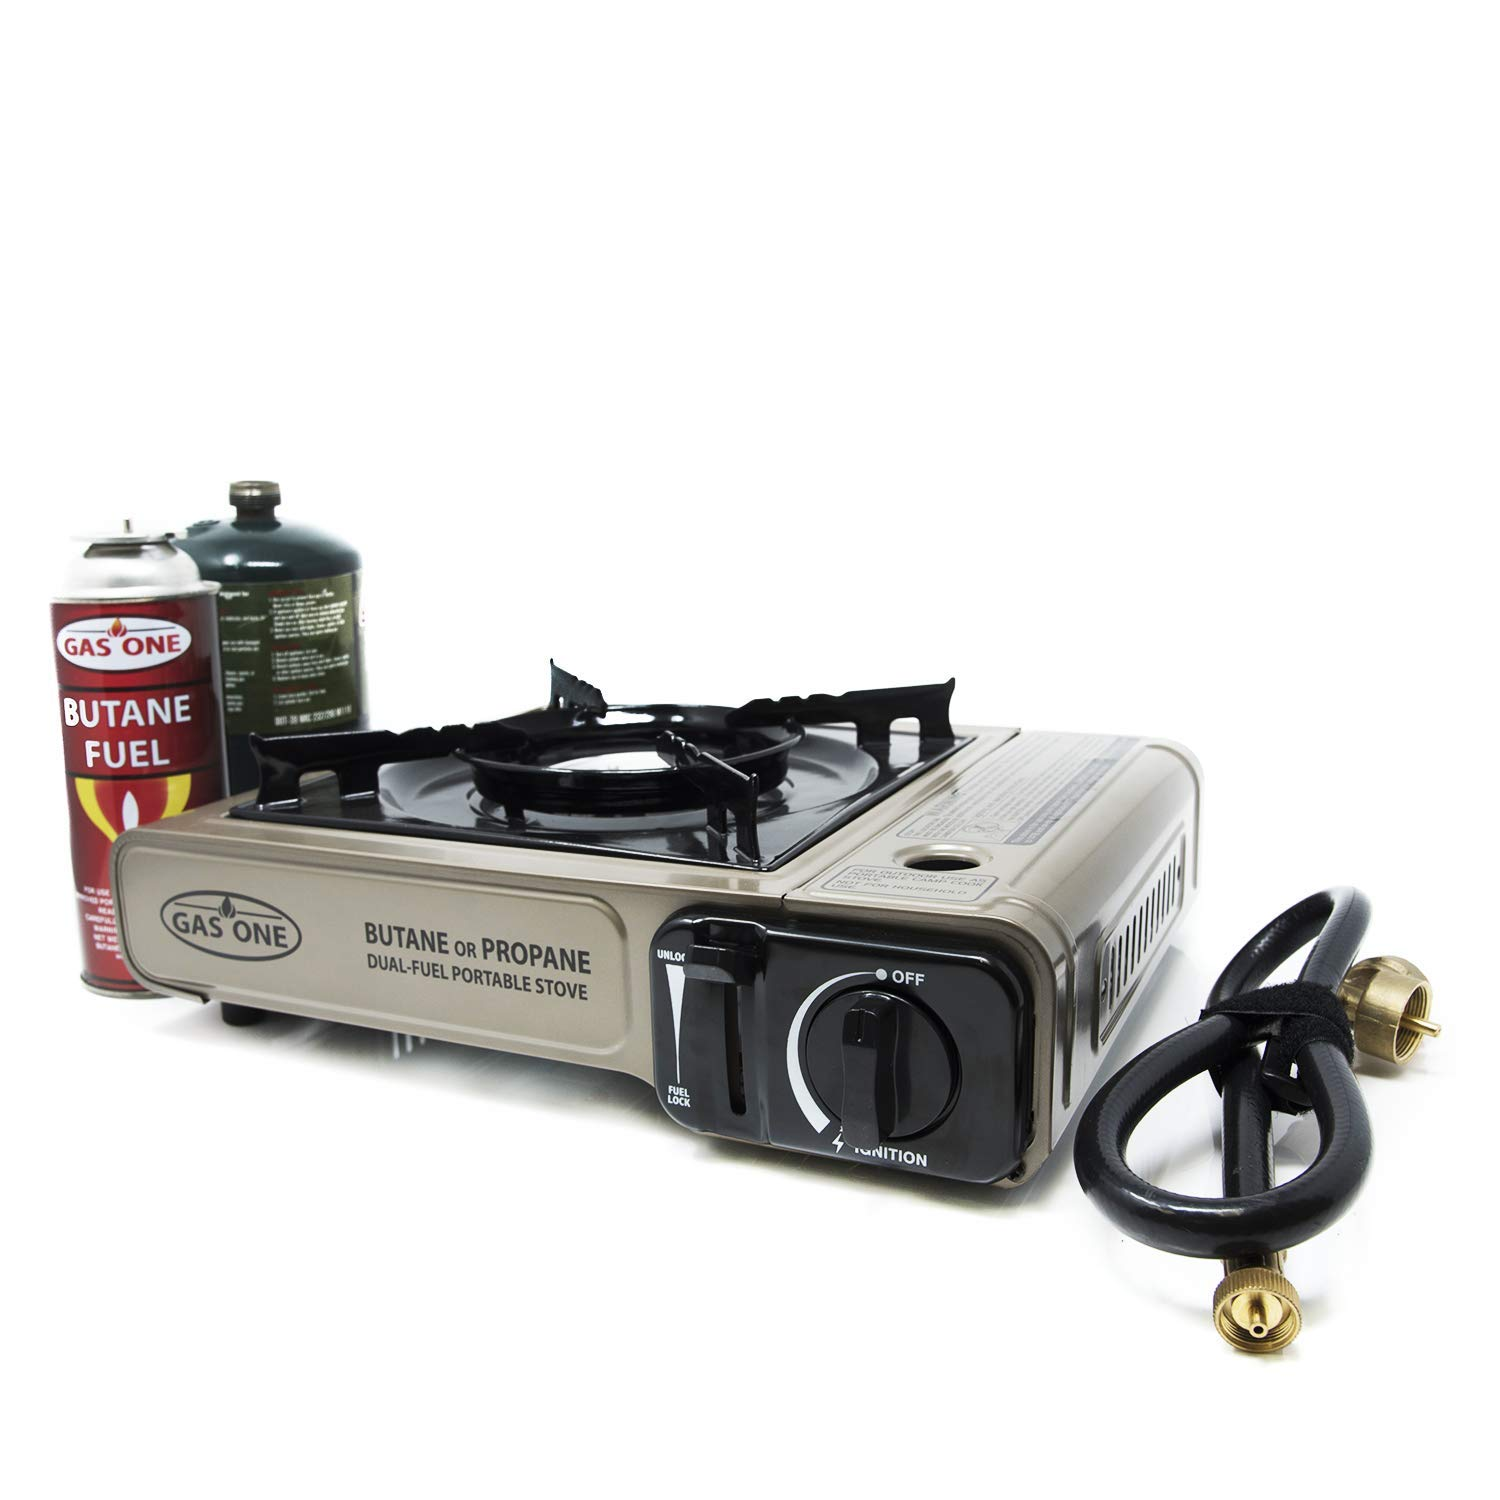 Gas ONE Propane or Butane Stove GS-3400P Dual Fuel Portable Camping and Backpacking Gas Stove Burner with Carrying Case Great for Emergency Preparedness Kit Gold